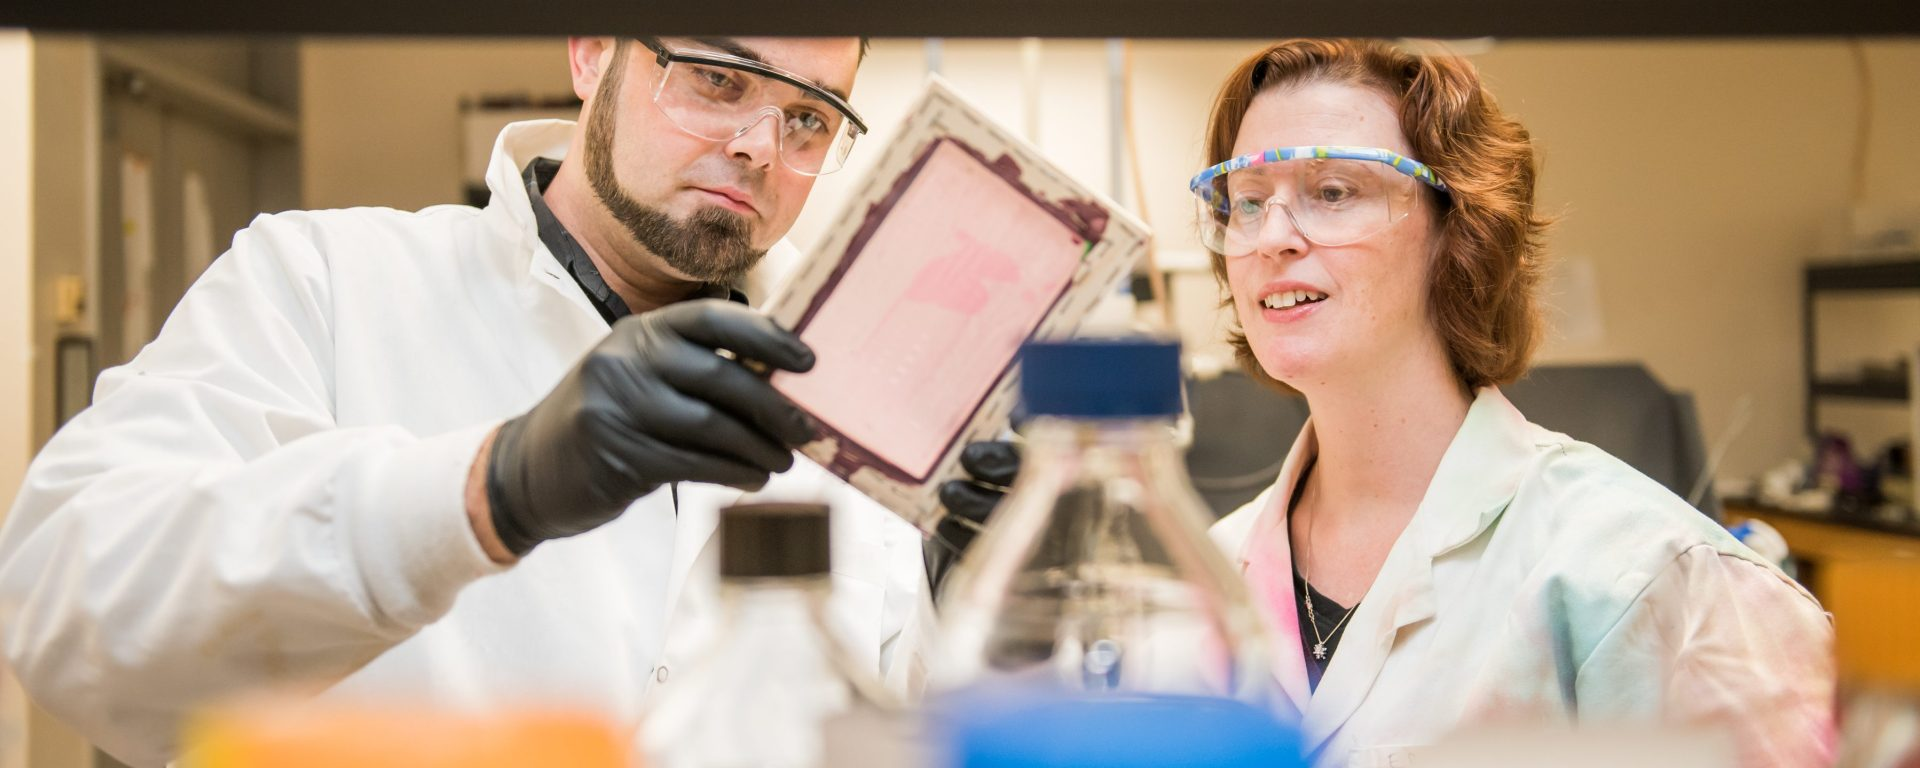 Man and woman look at equipment in a lab. Both wear lab coats and protective glasses.